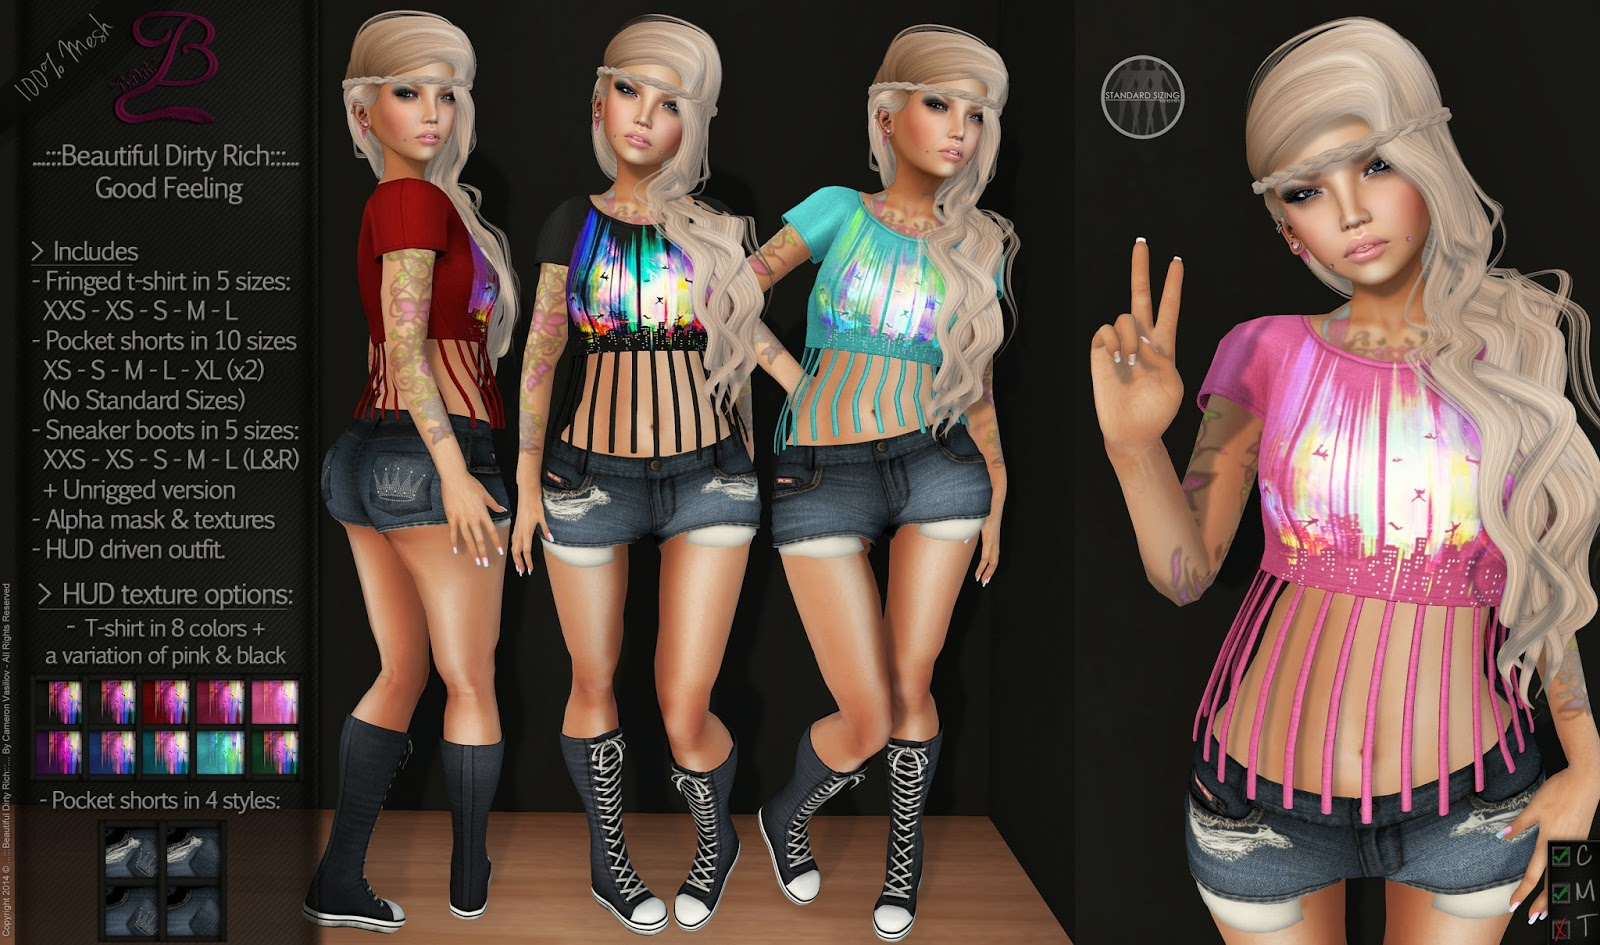 https://marketplace.secondlife.com/p/BDR-Good-Feeling-Complete-Outfit/5861852